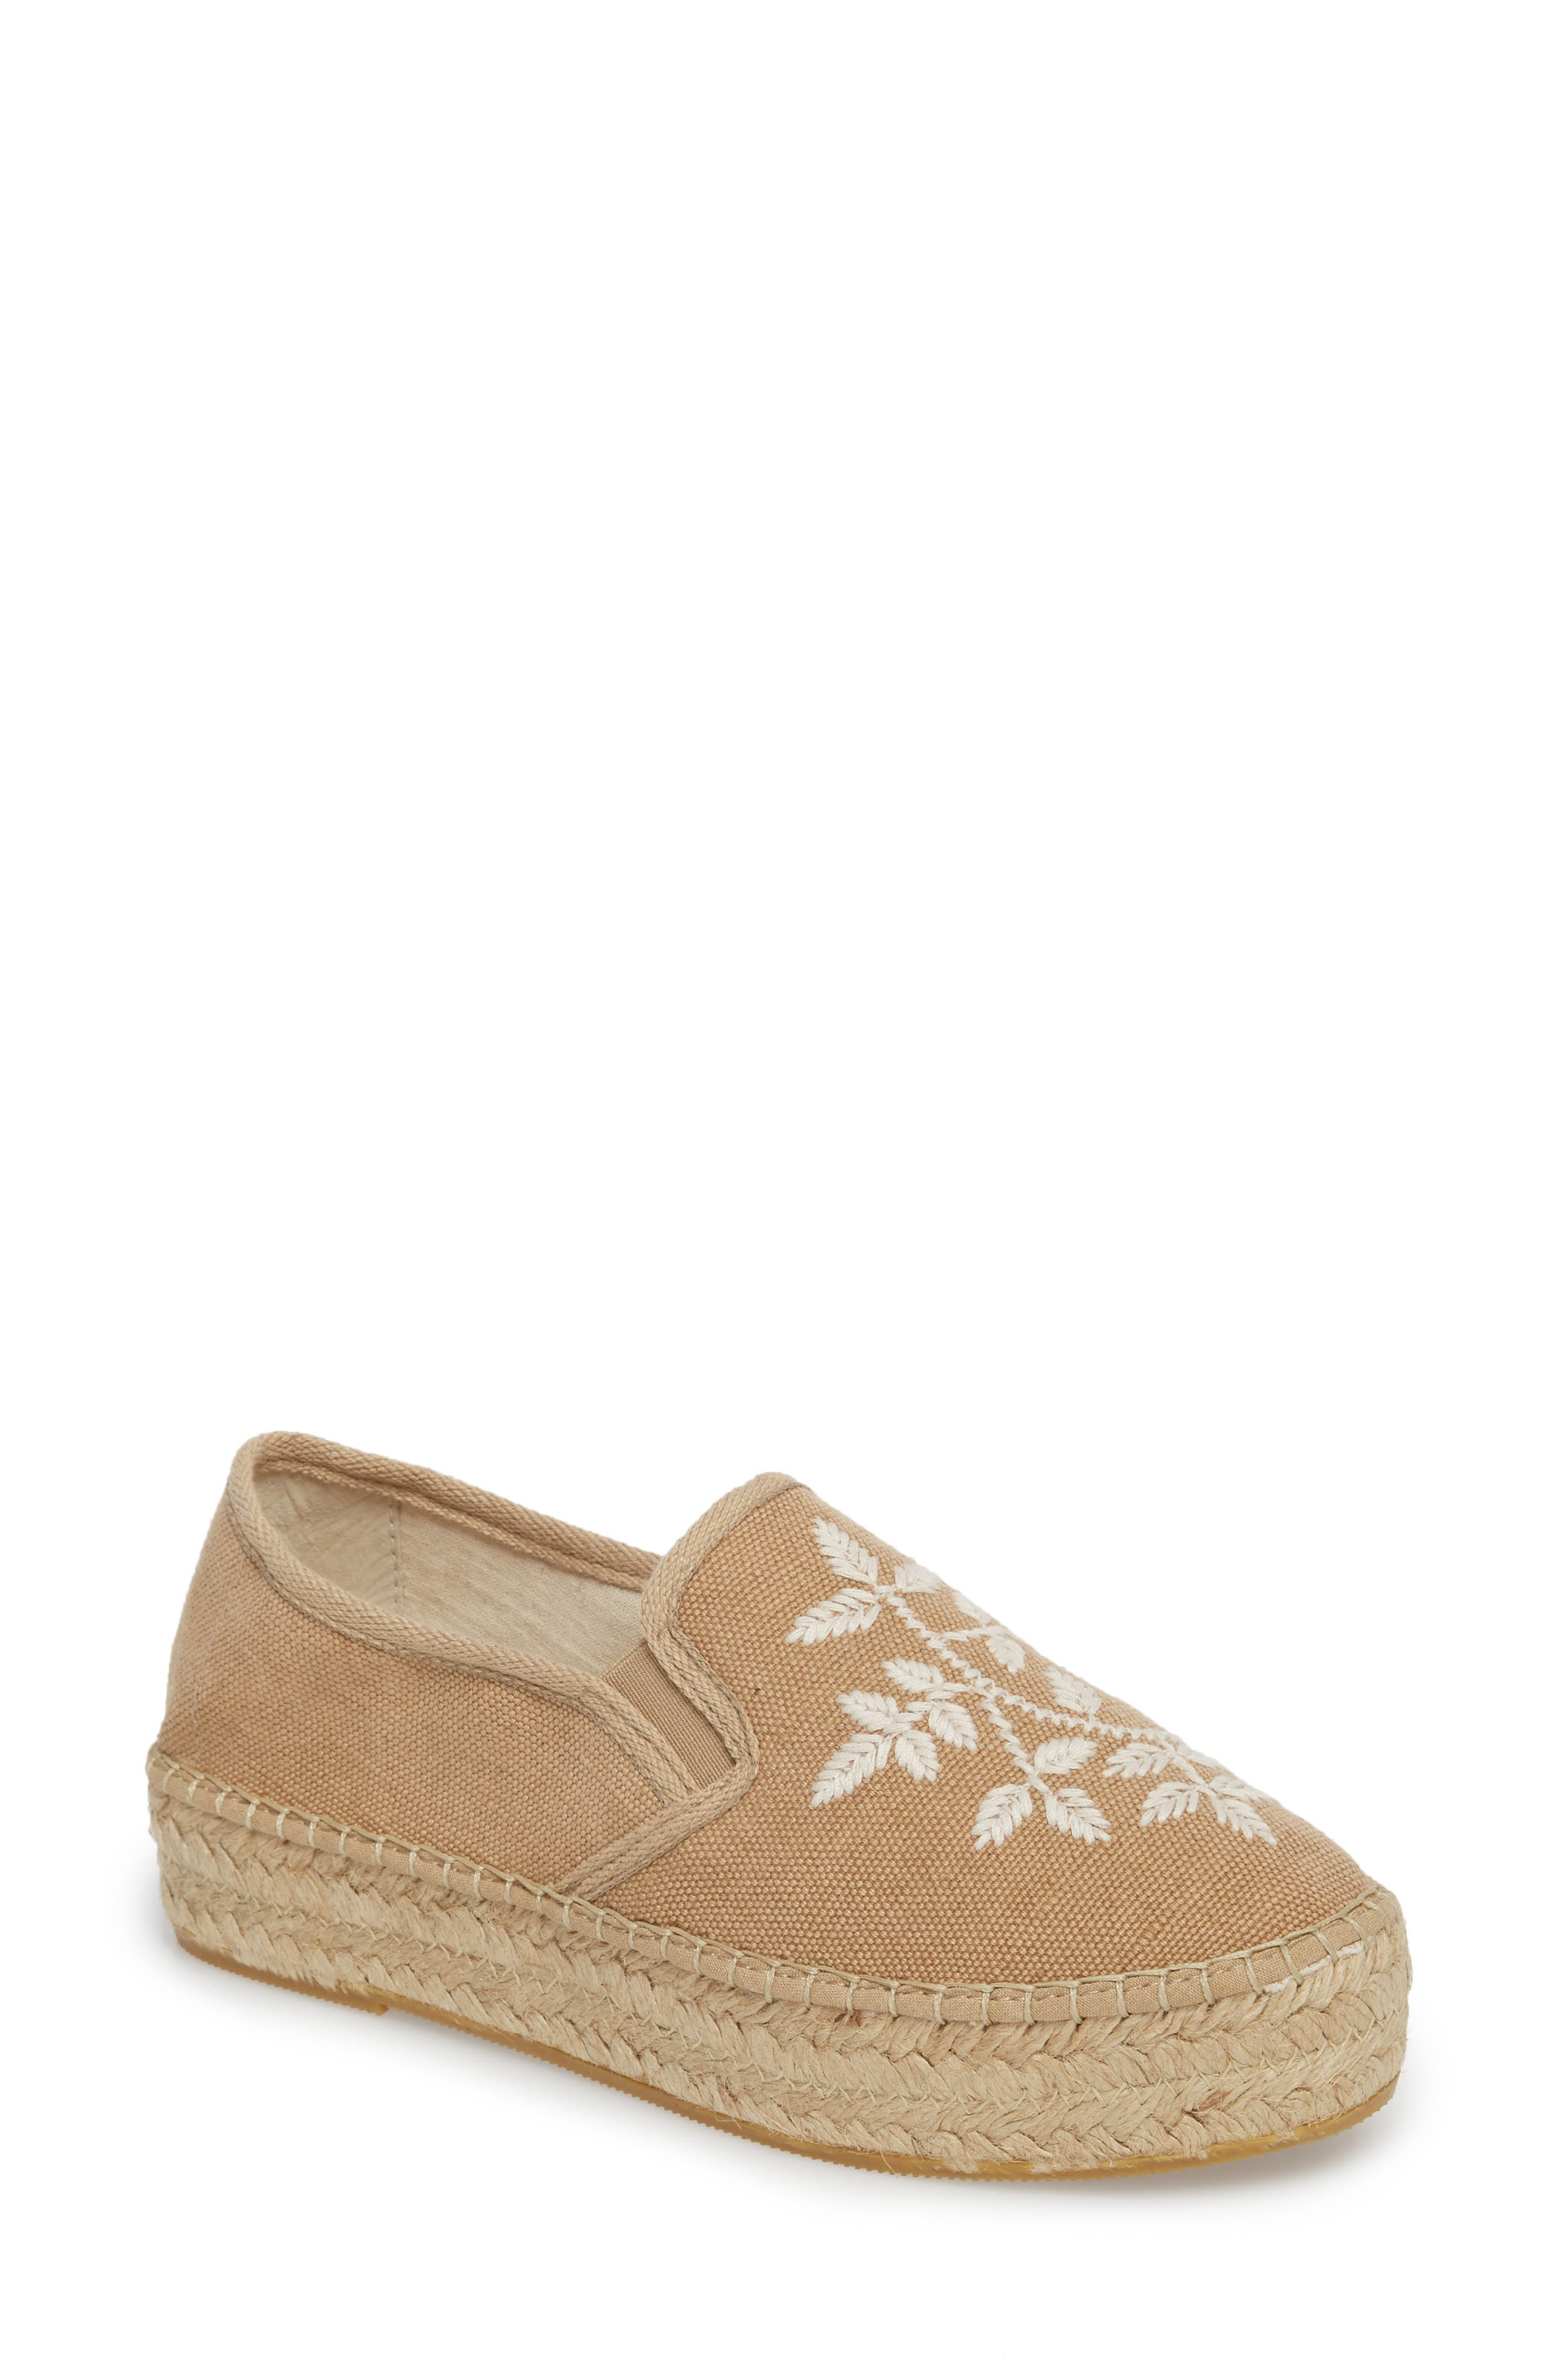 Florence Embroidered Platform Espadrille Sneaker,                         Main,                         color, Tobacco Fabric